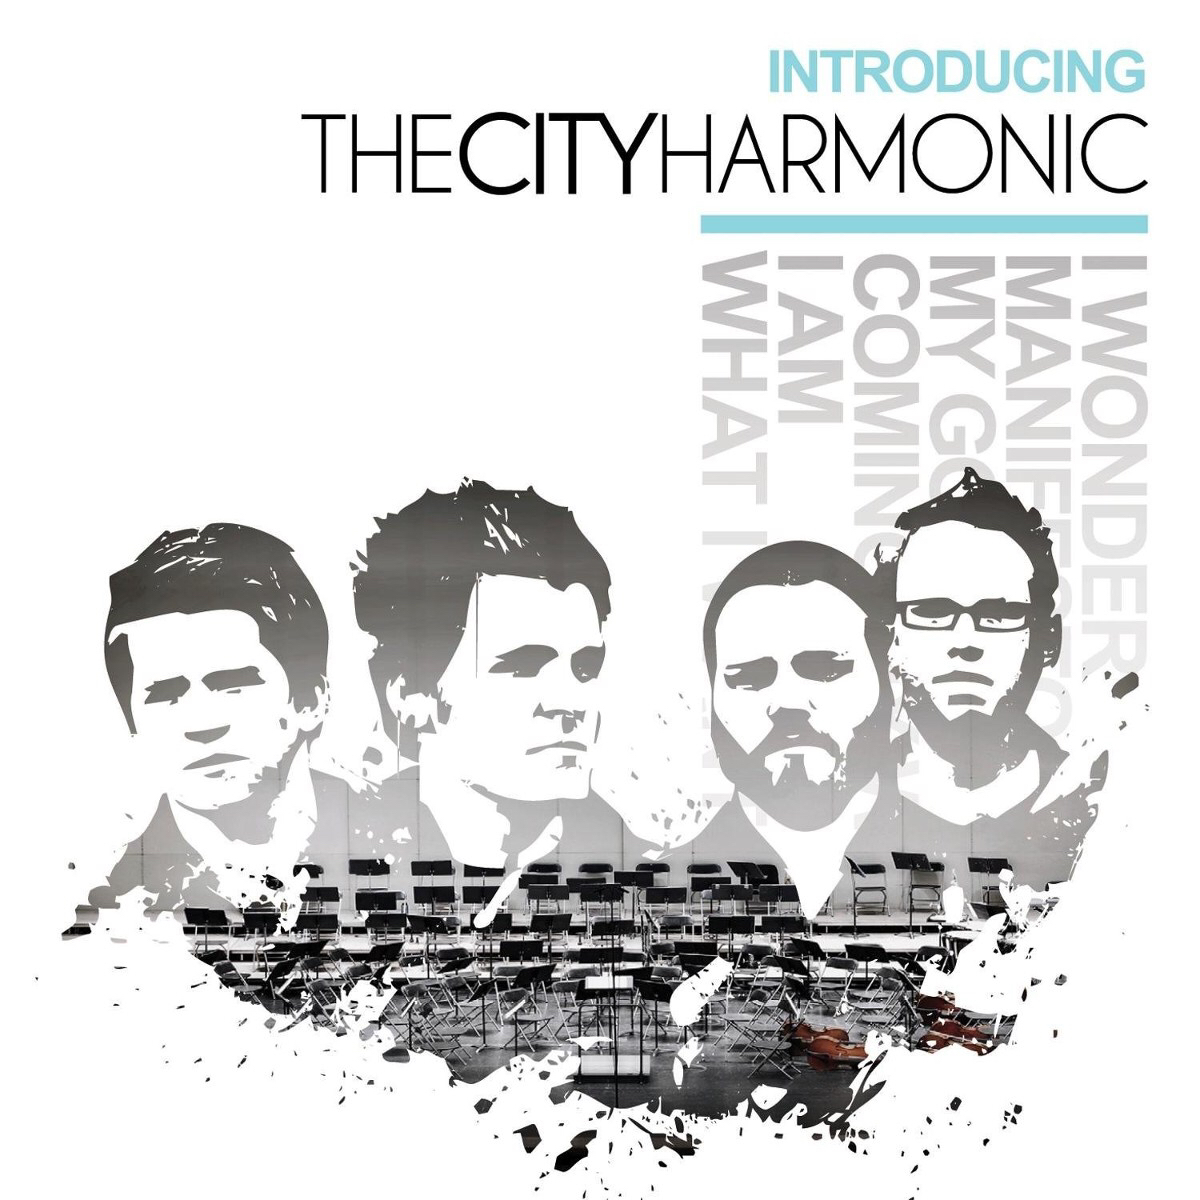 Introducing The City Haromonic